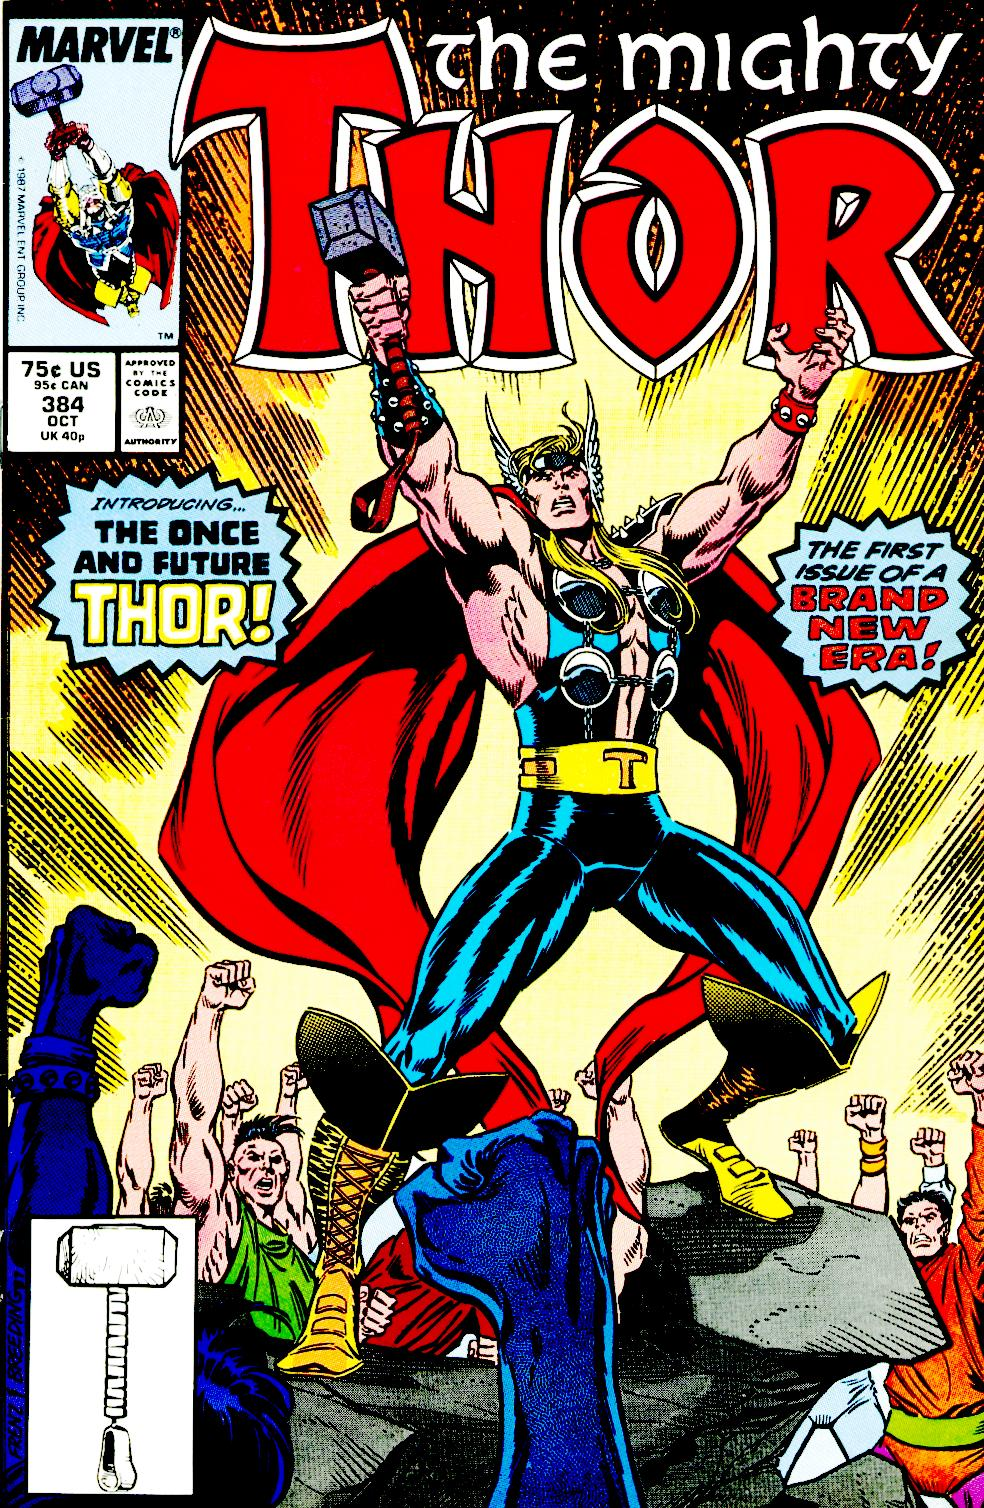 1987 - The Mighty Thor #384